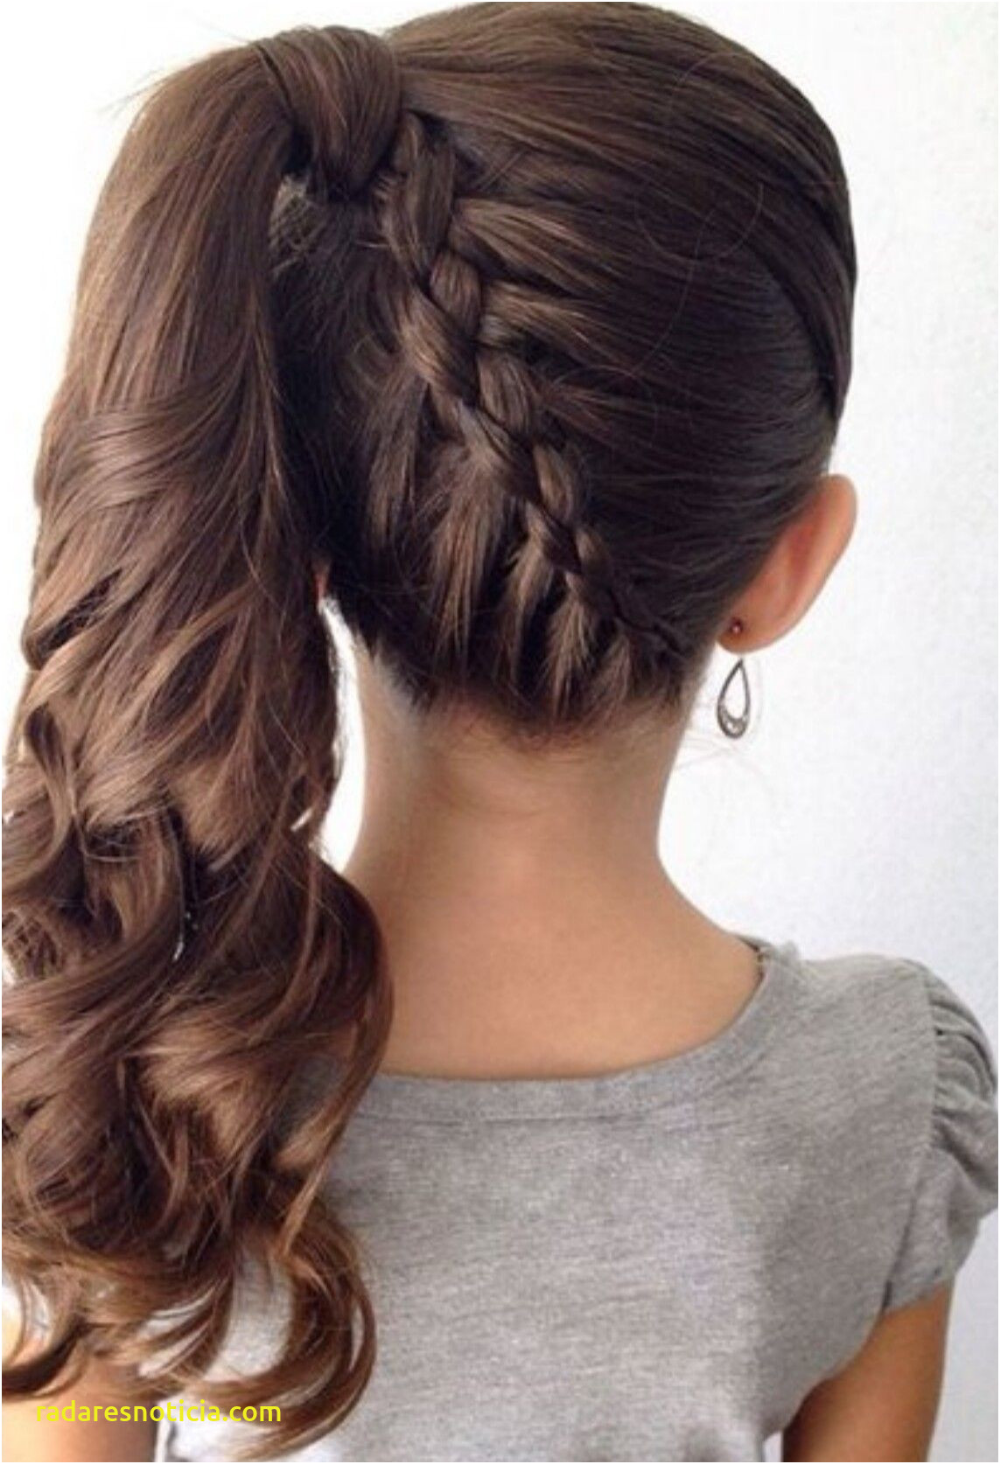 20 Fancy Little Girl Braids Hairstyle Hair style easy #coolgirlhairstyles